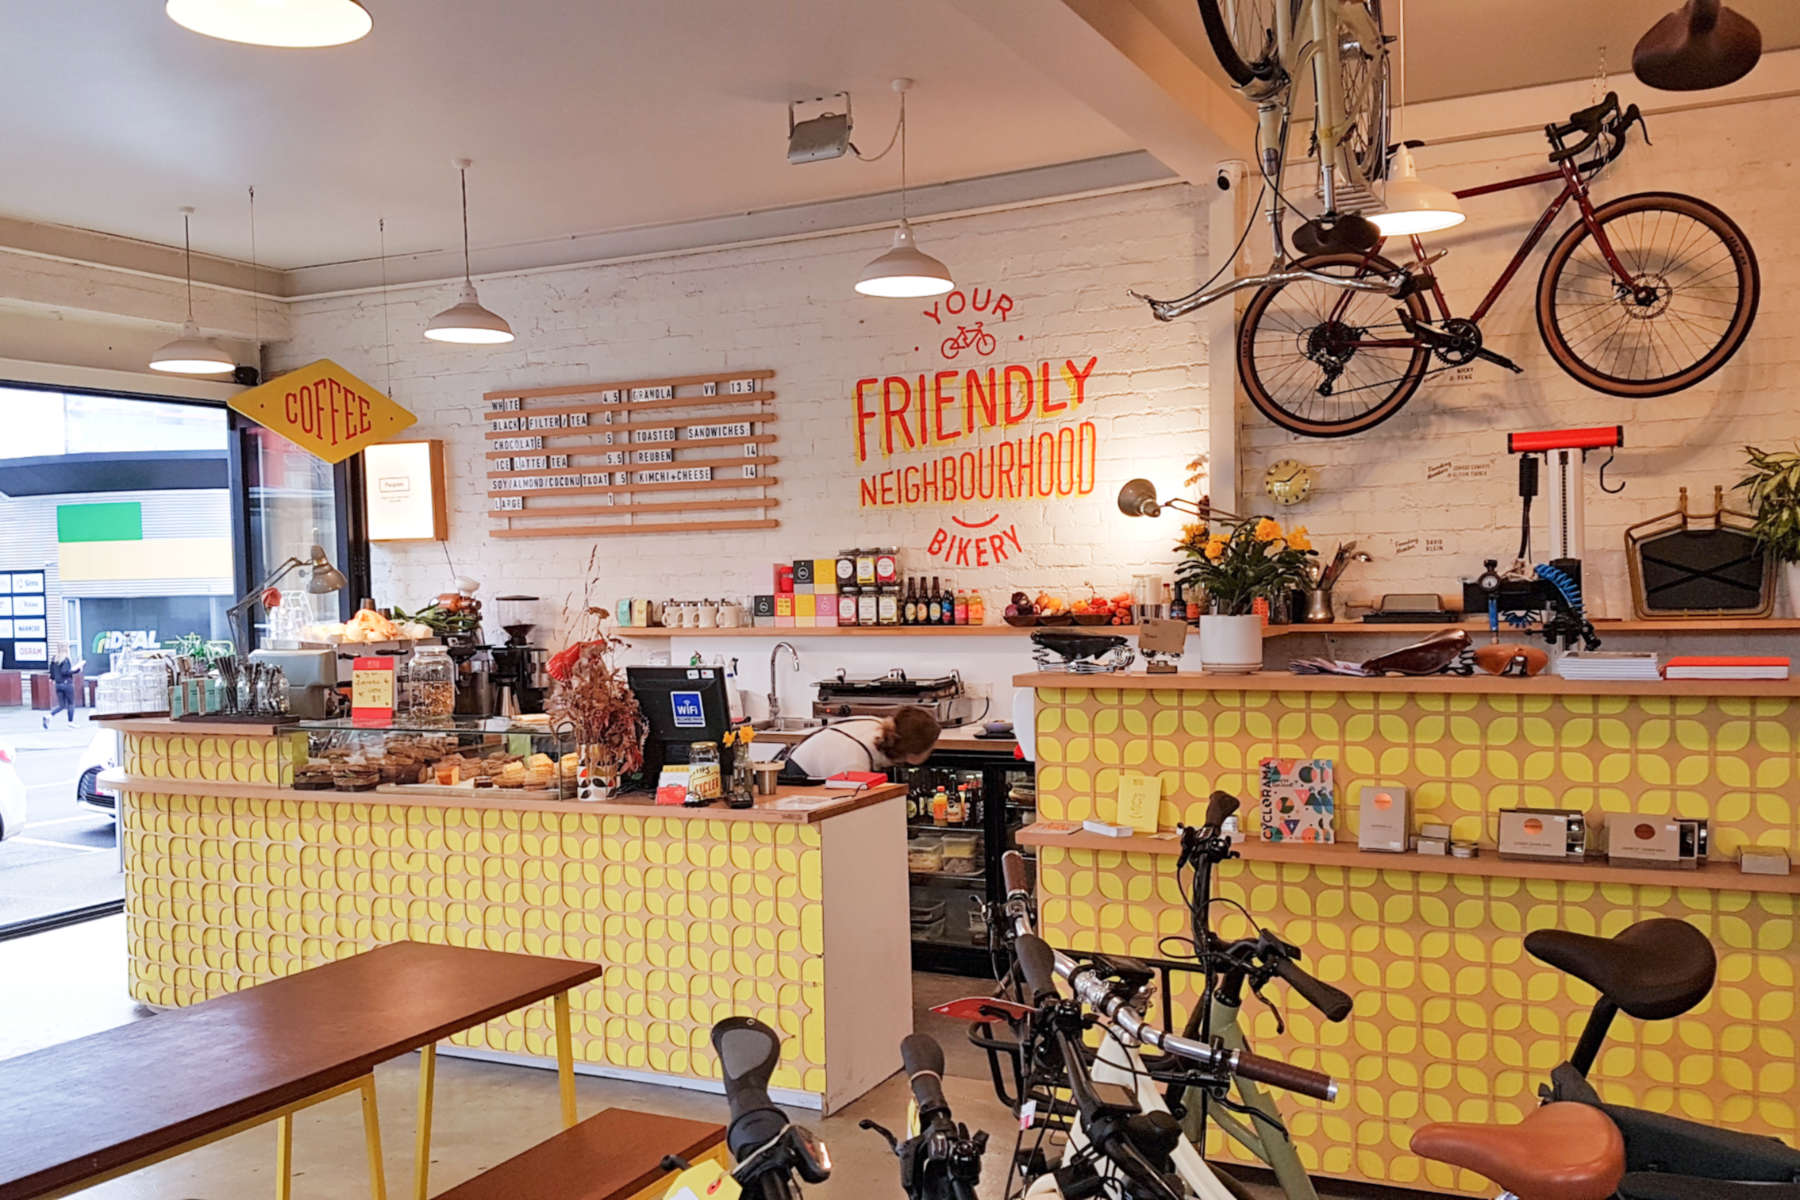 Bicycle Junction - interior view to counter